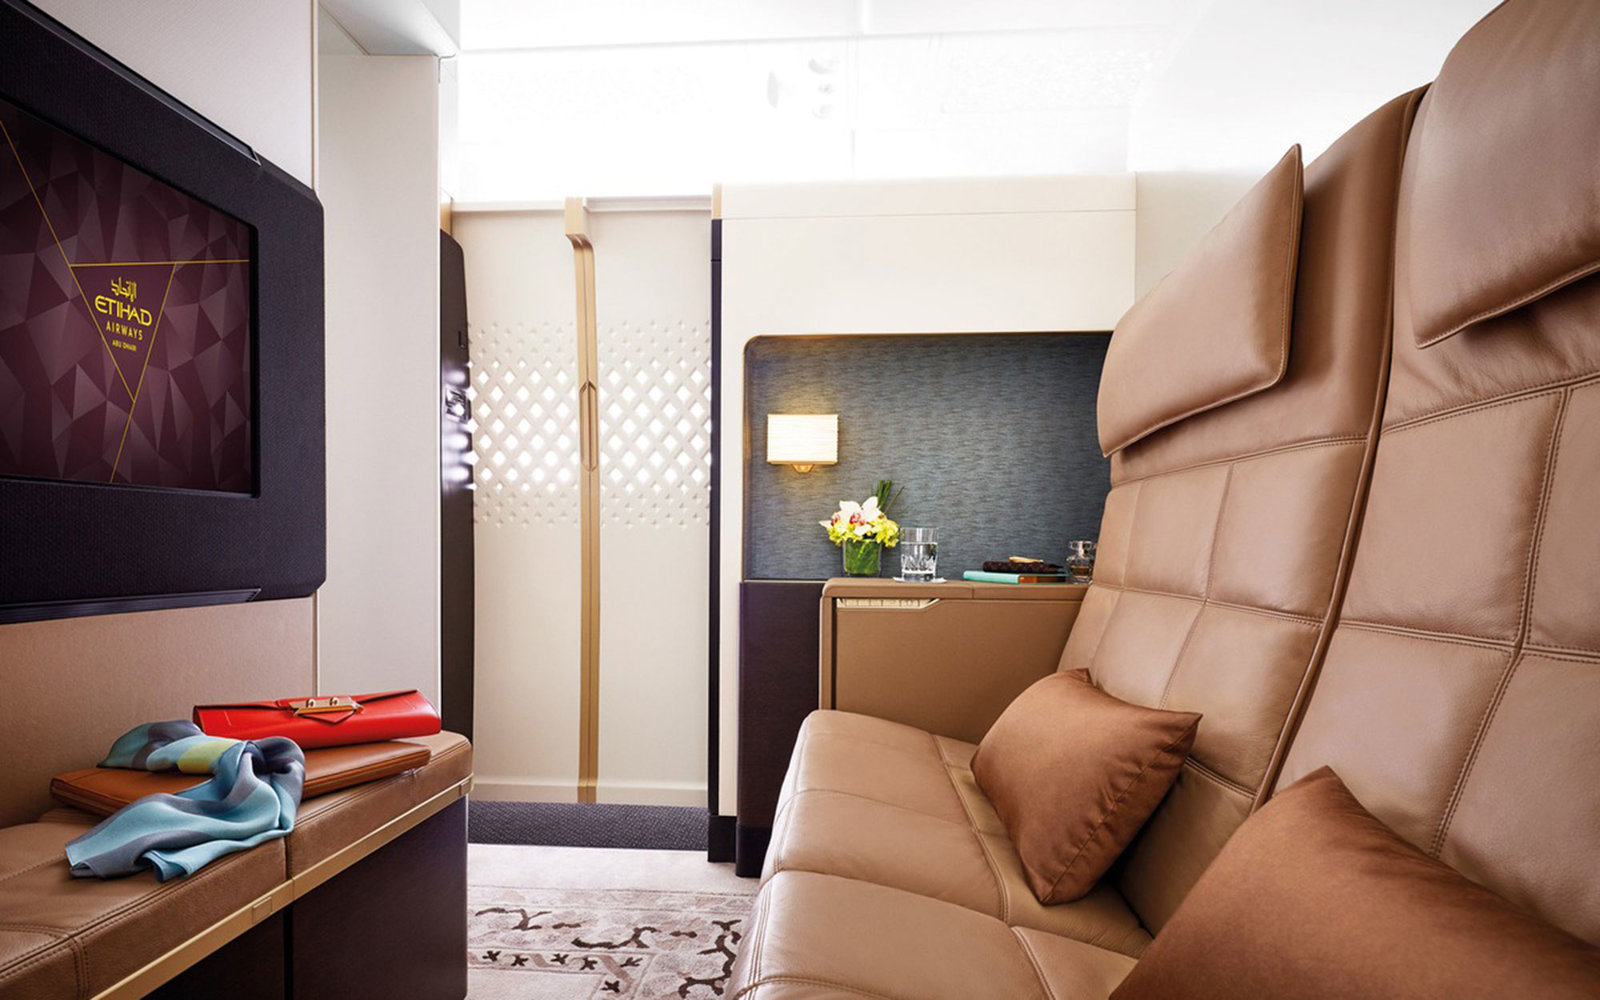 to between etihad couch s img sydney etihads residence world expensive london most costs w flight o